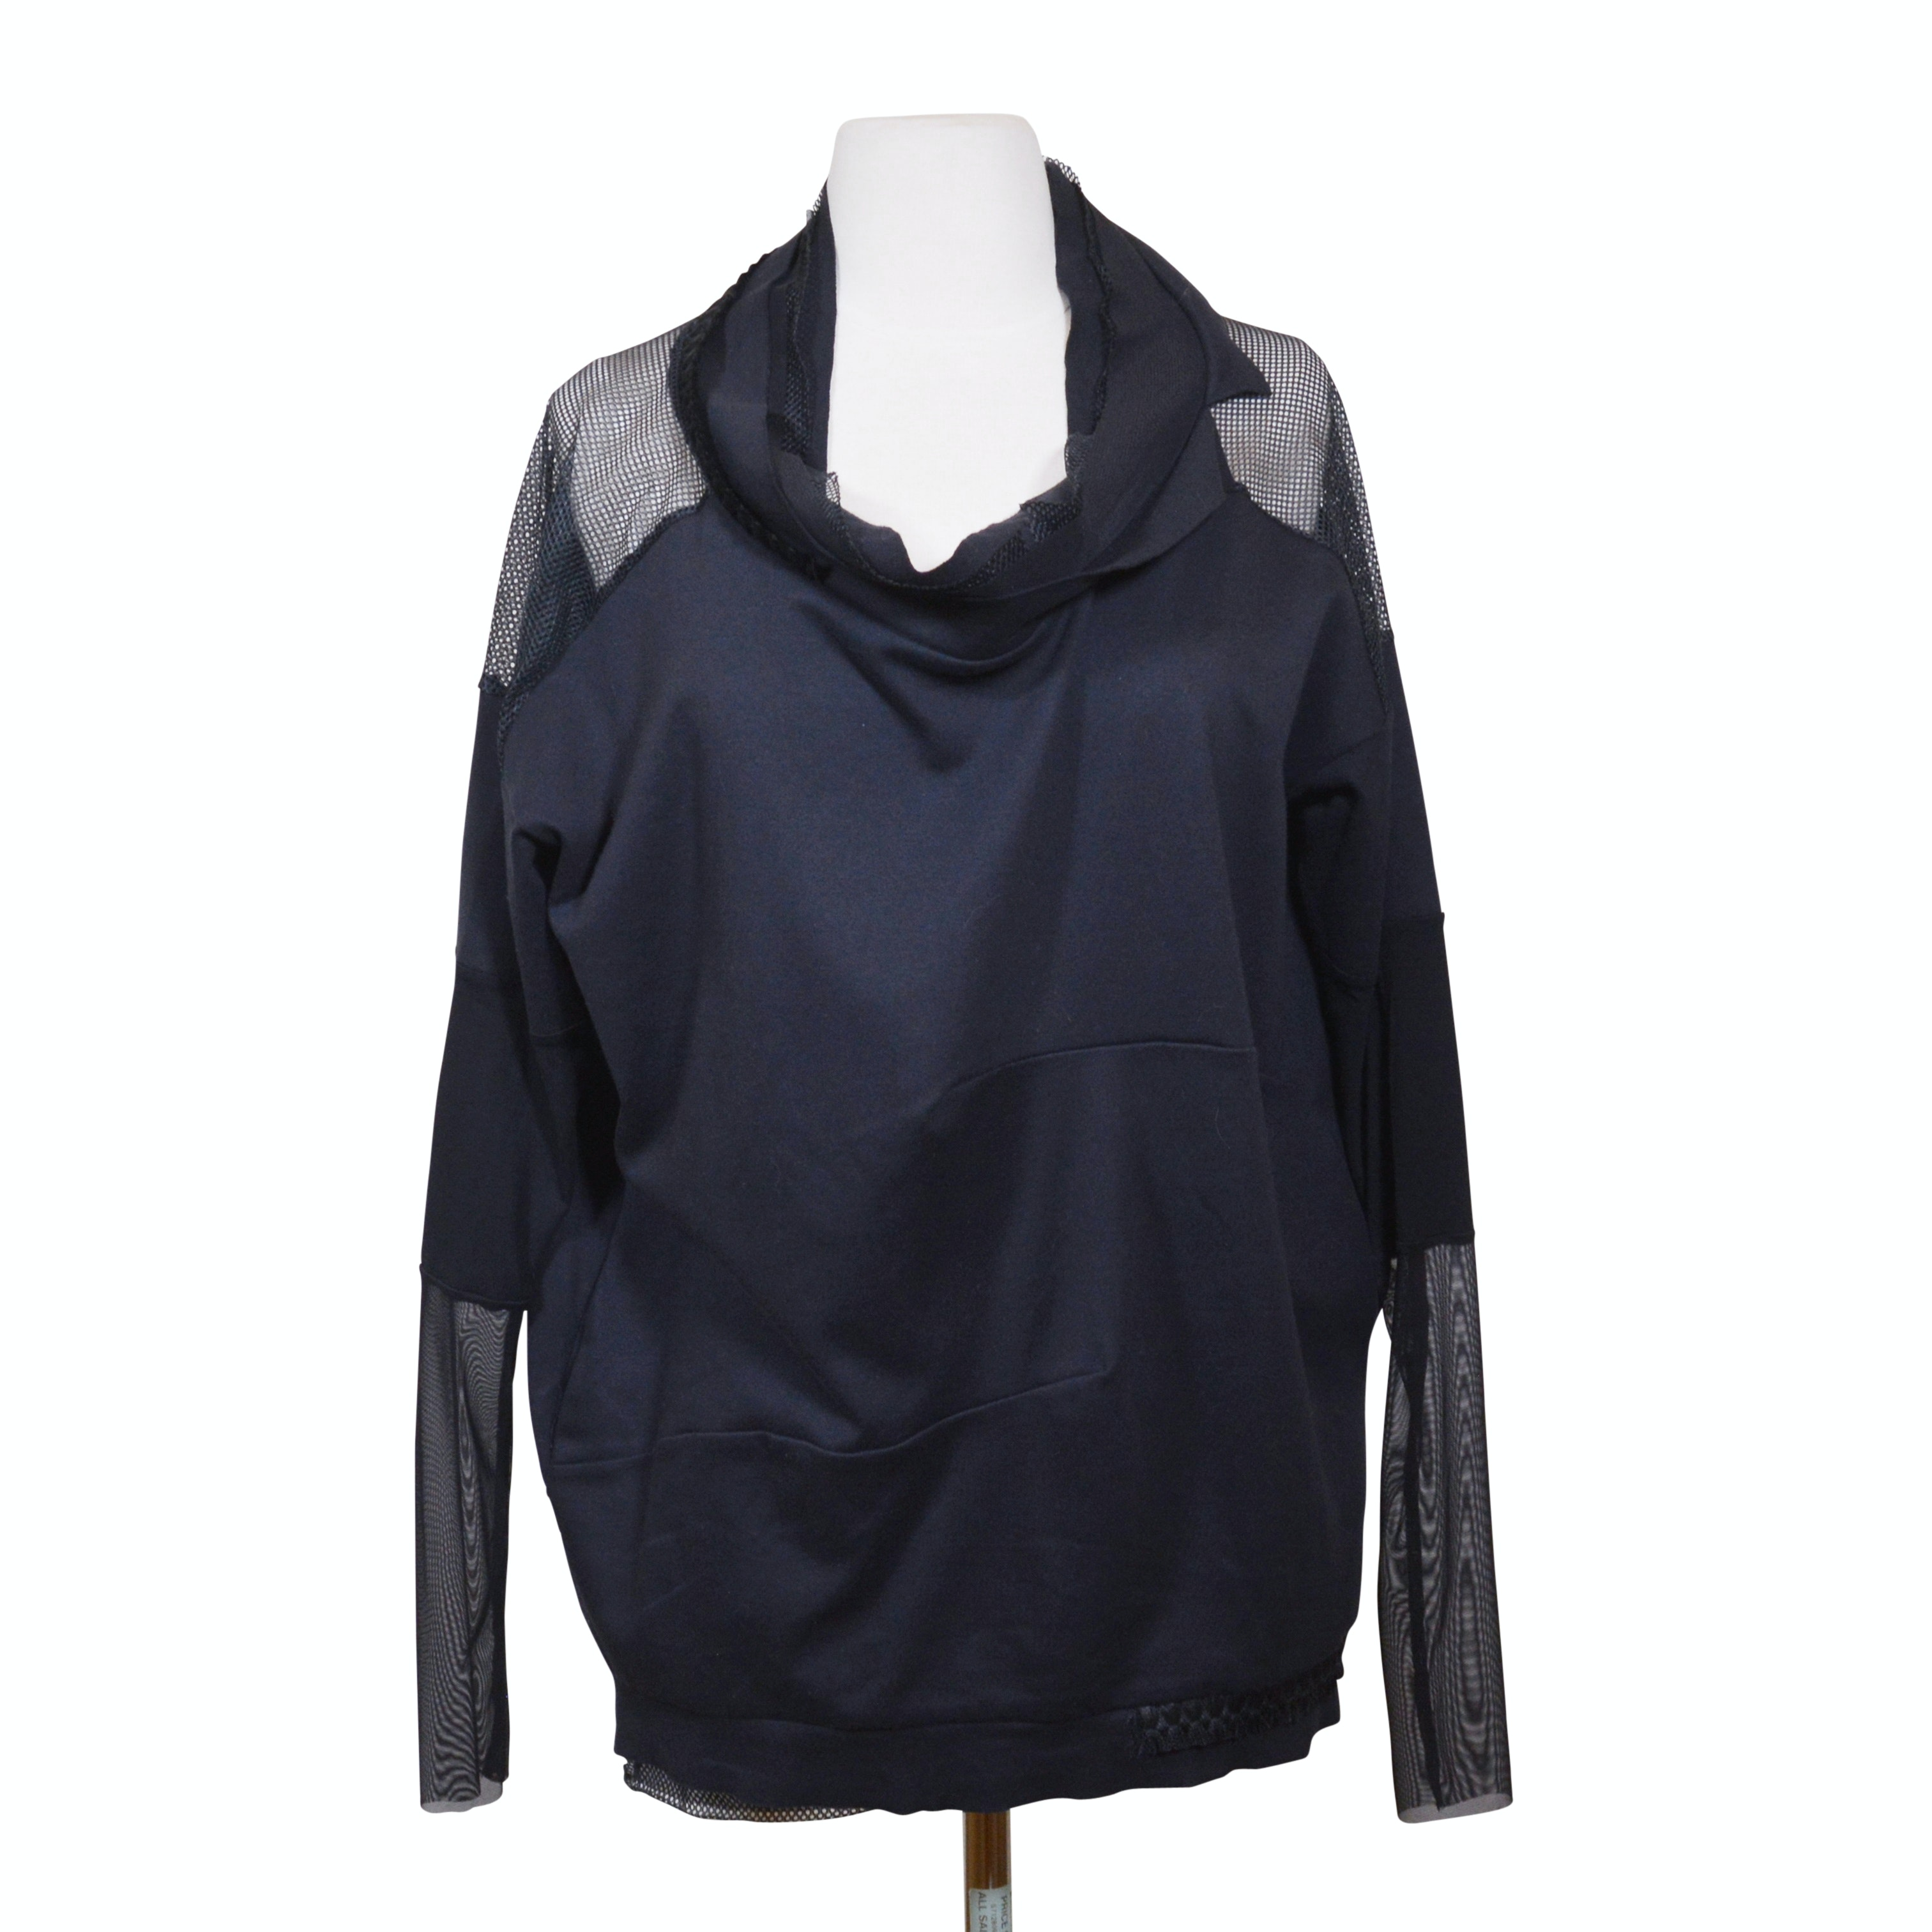 Art Point Netting and Fabric Long Sleeve Top